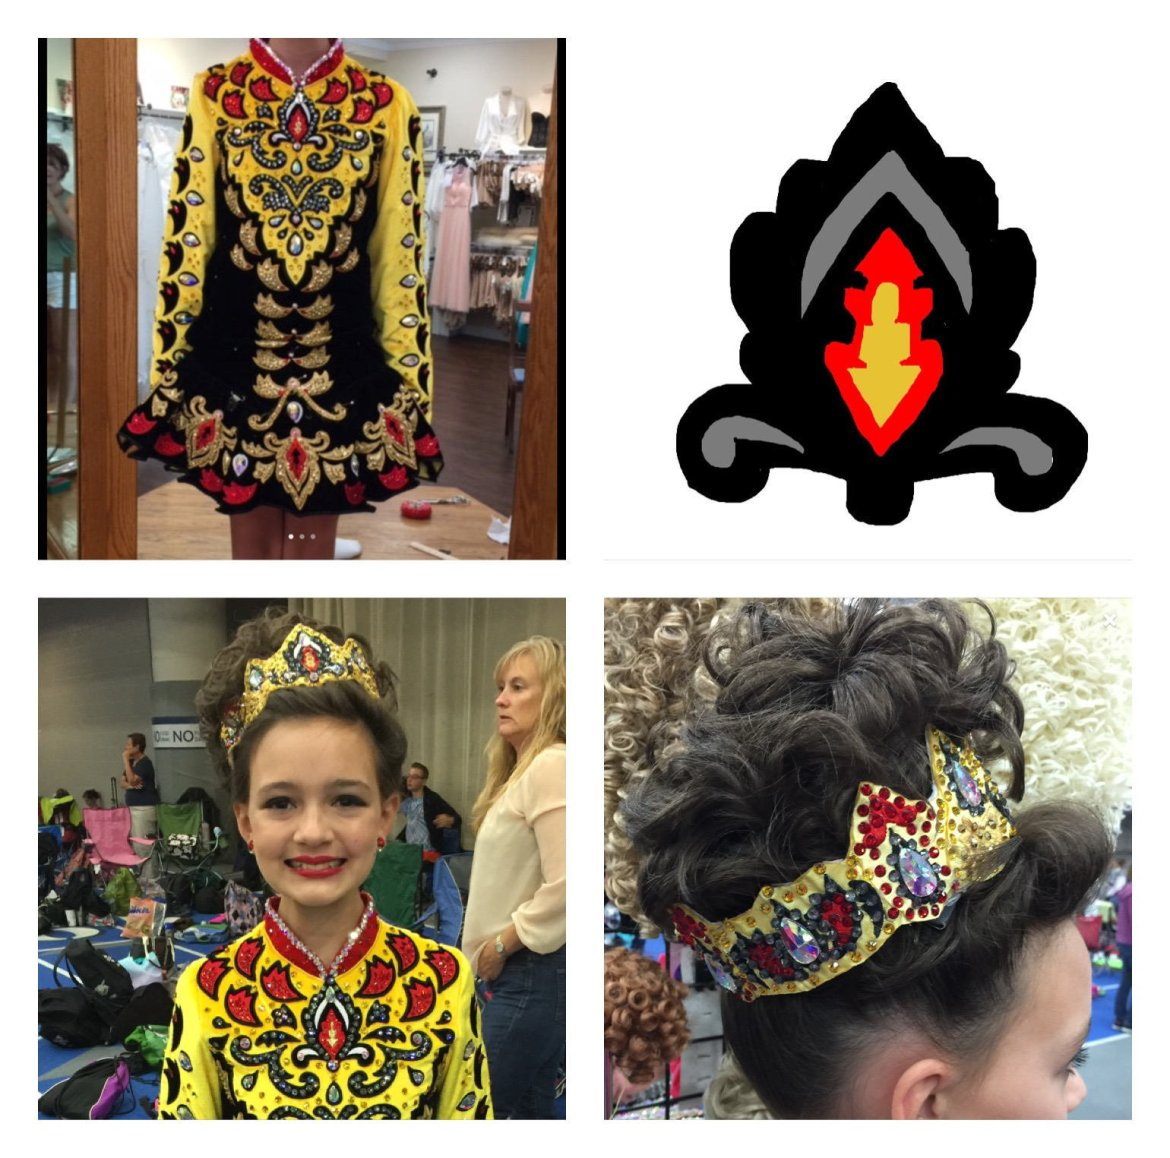 Custom designed tiara to match your solo costume. Design included. 00014